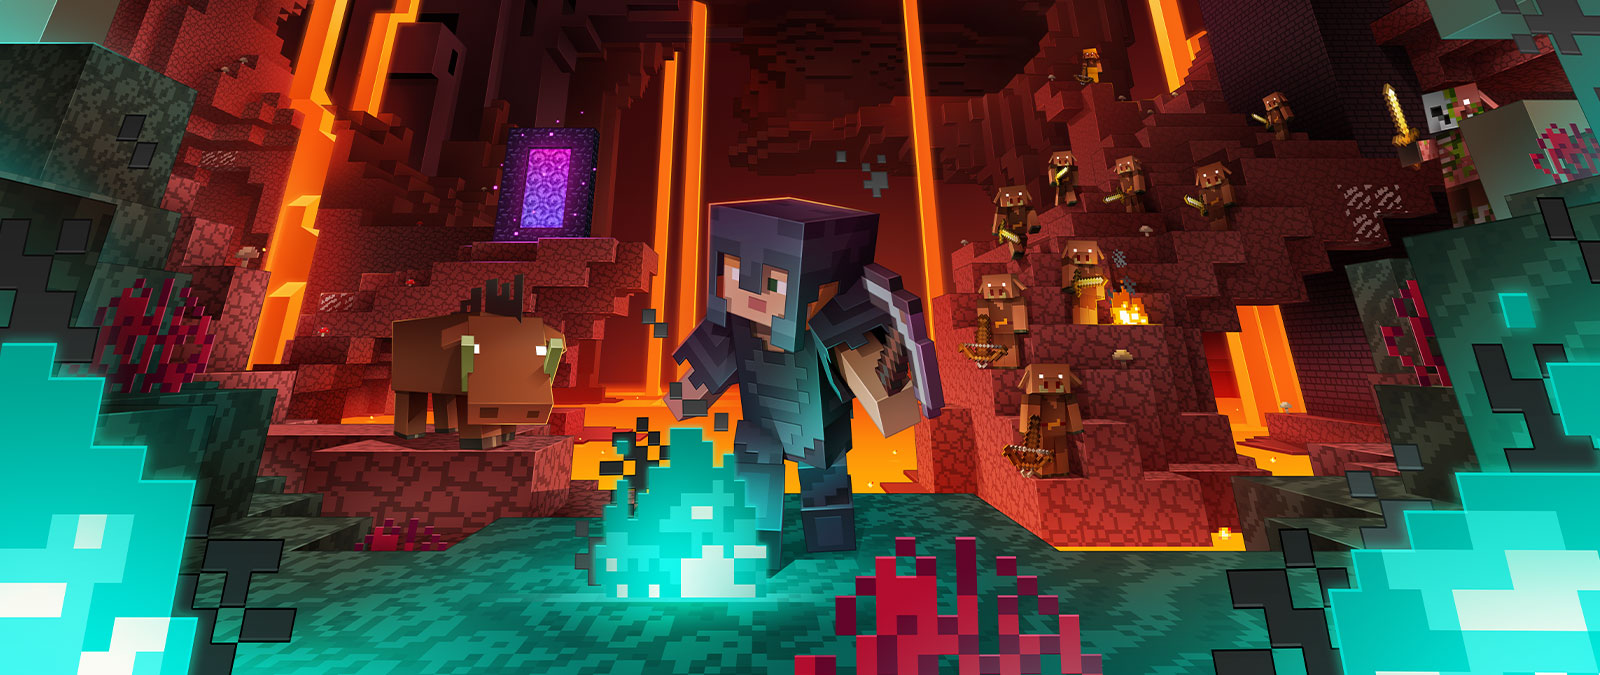 Character from Minecraft exploring the Nether with characters in the back